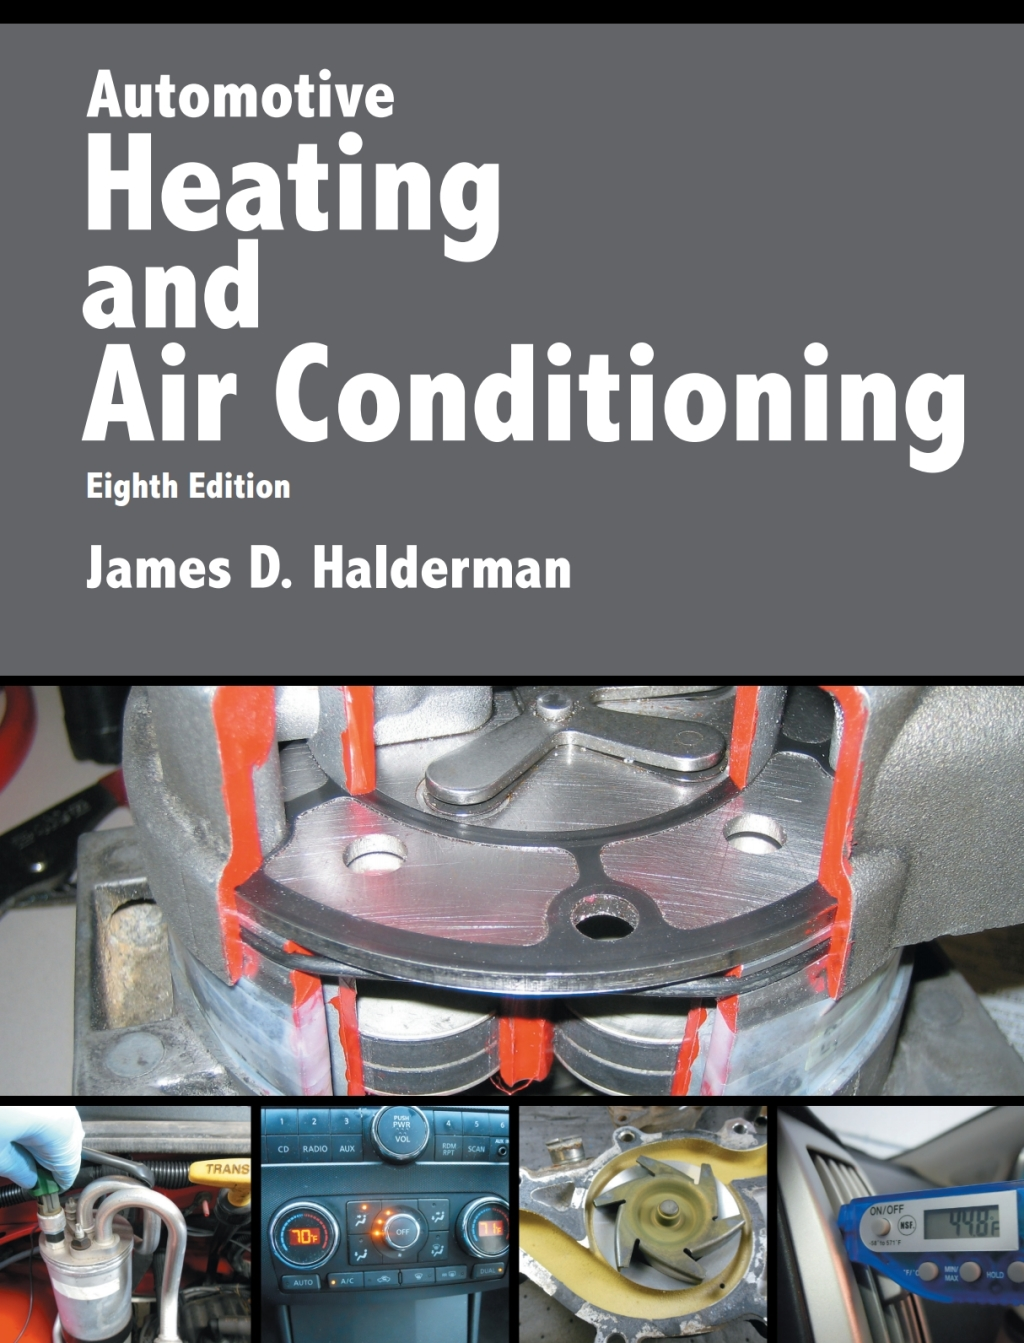 Automotive Heating and Air Conditioning (ebook) eBooks